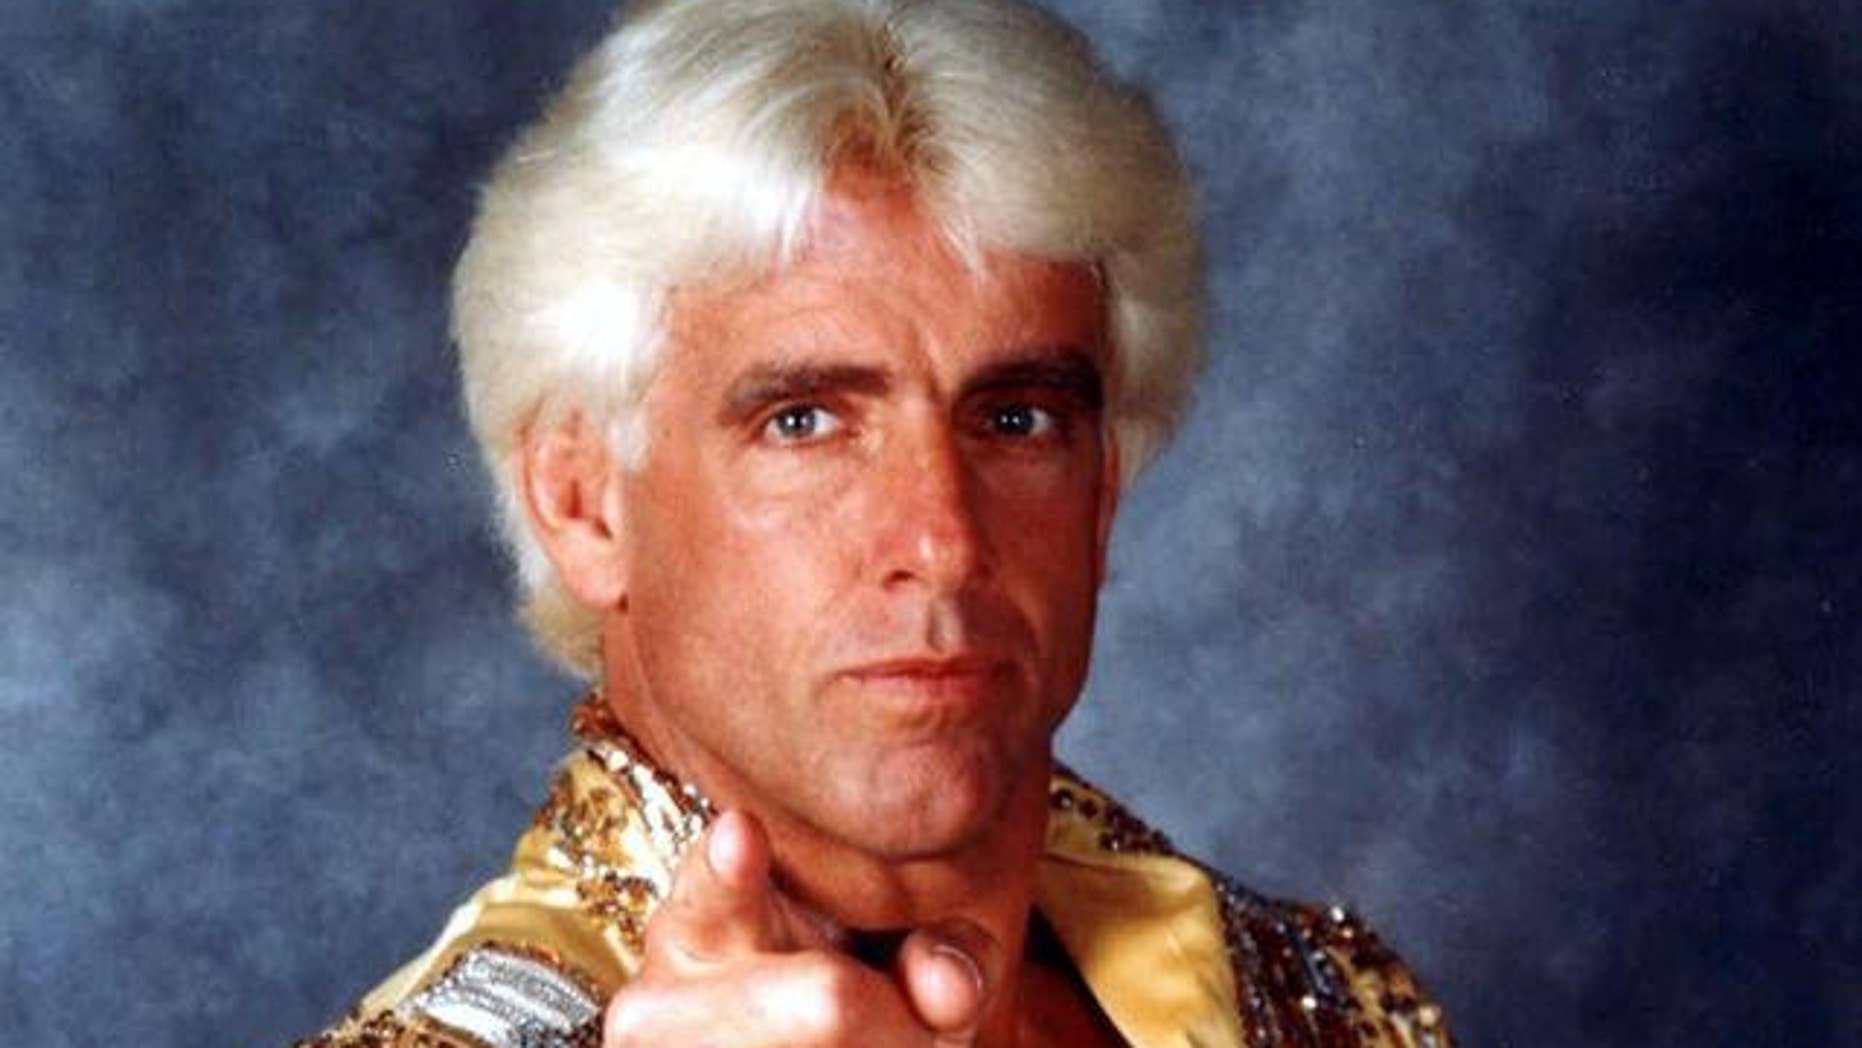 """Ric """"Nature Boy'' Flair is seen in this wrestling headshot photo."""